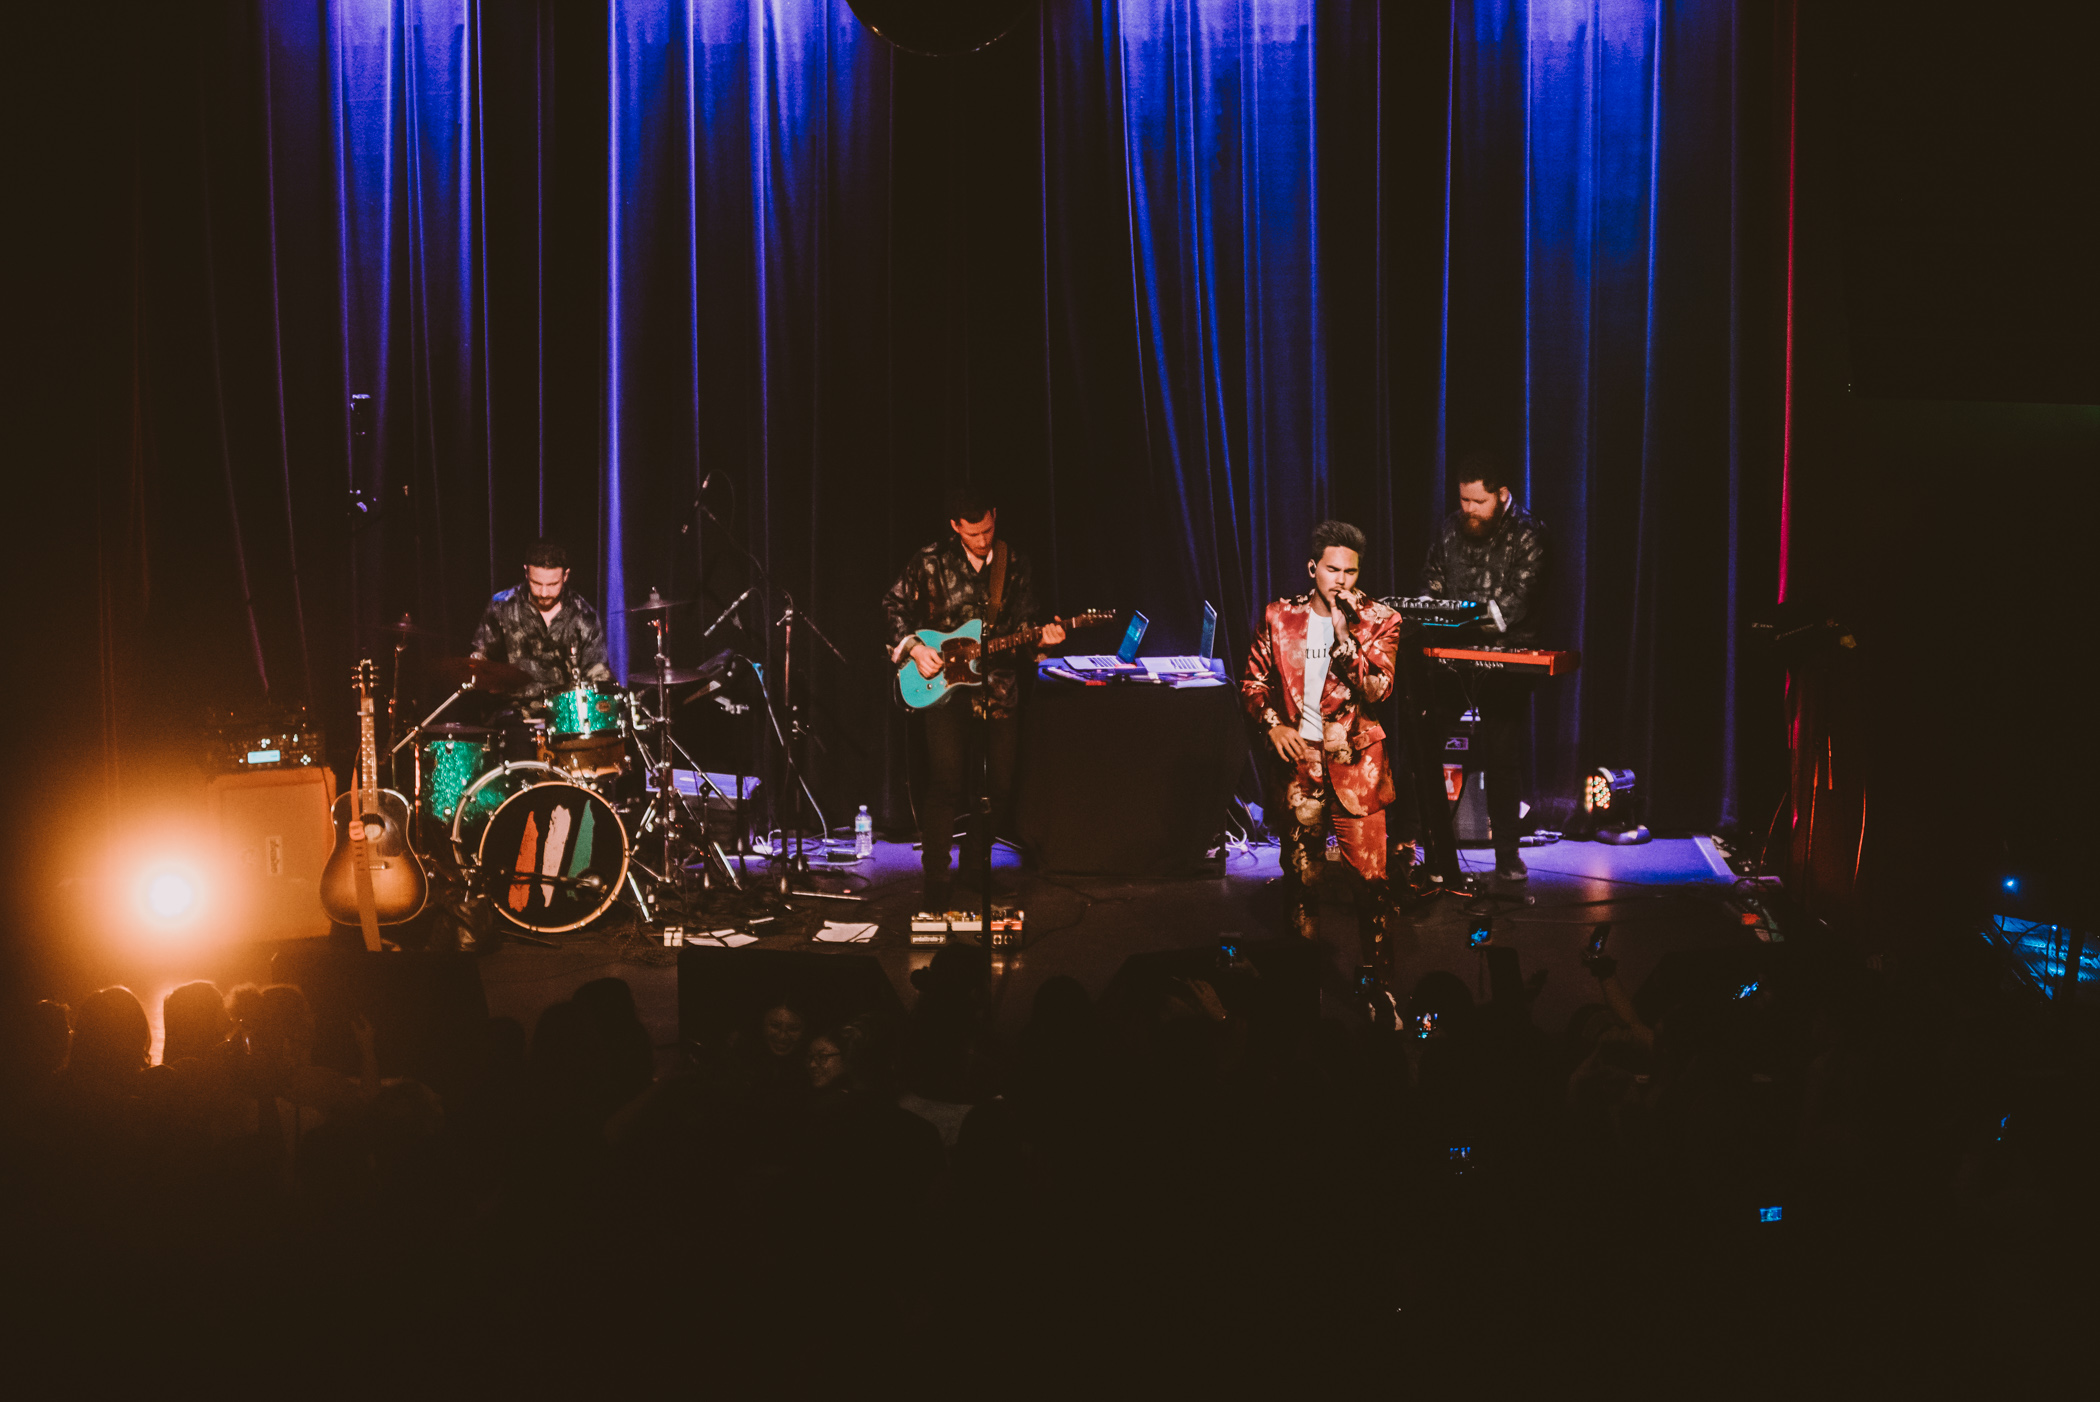 Tyler_Shaw-Venue-Timothy_Nguyen-20190131 (10 of 22).jpg